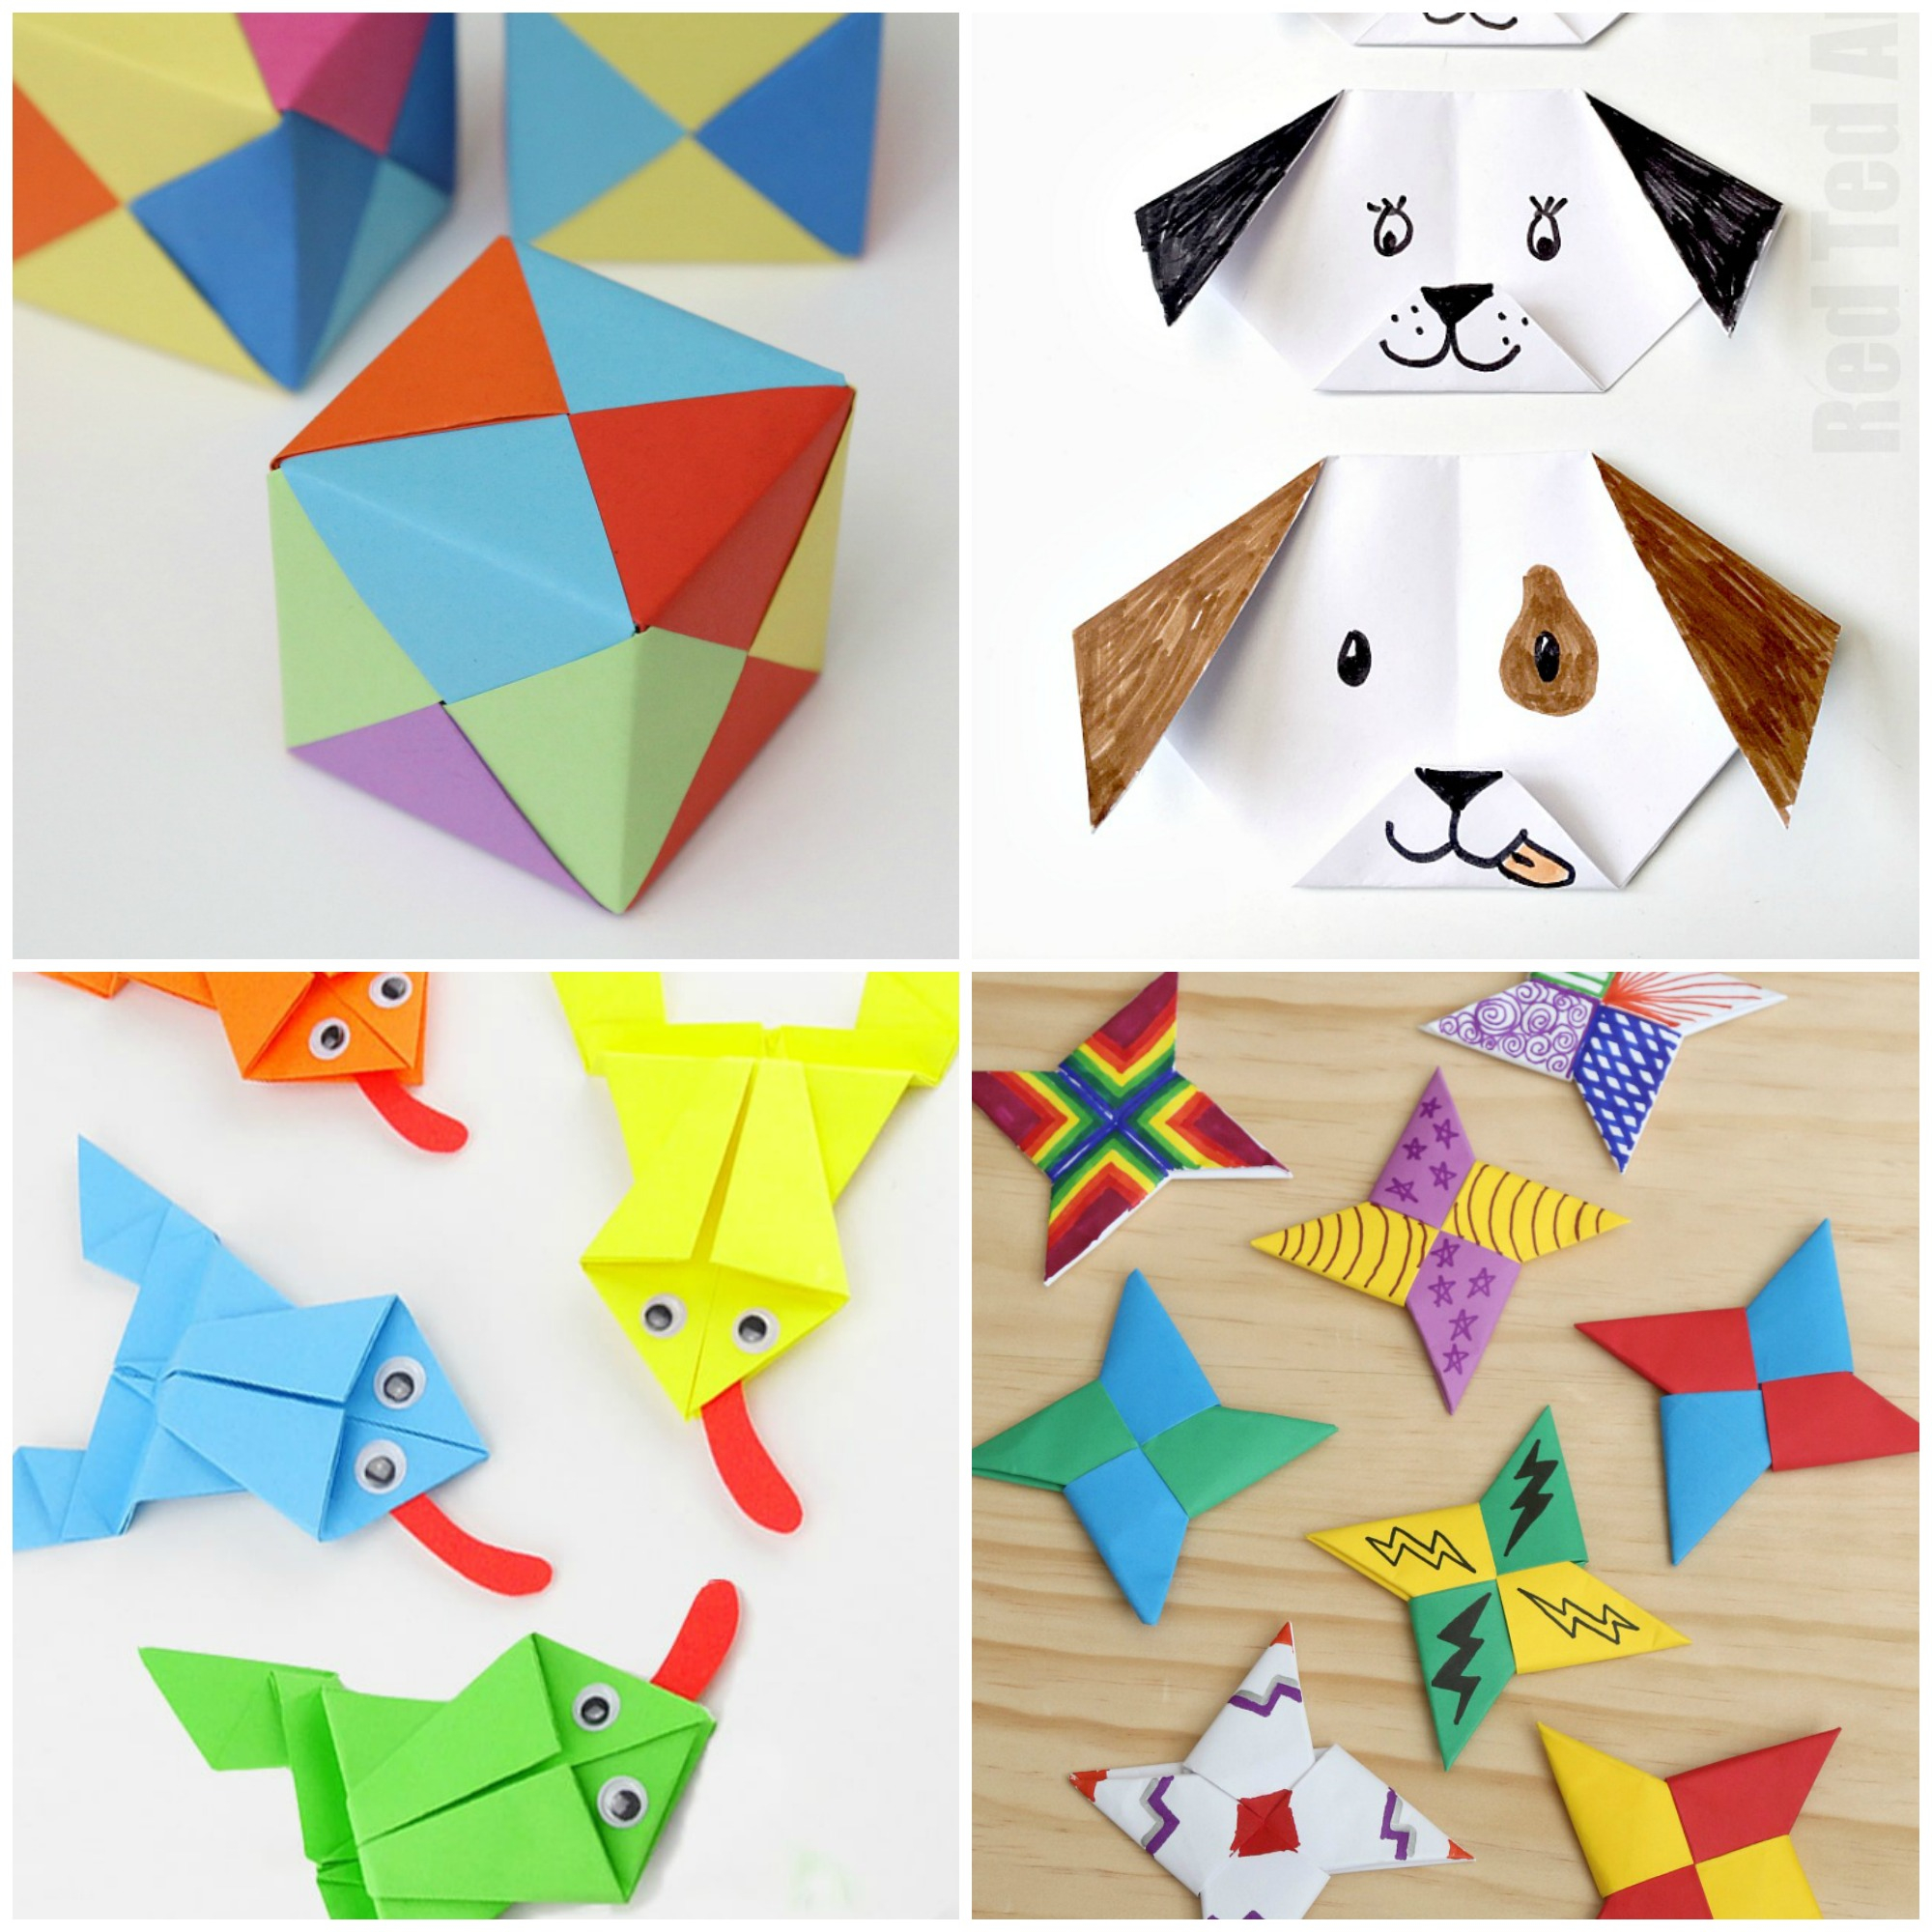 Home crafts you can make with paper Paper Crafts For Kids 30 Fun Projects Youll Want To Try Frugal